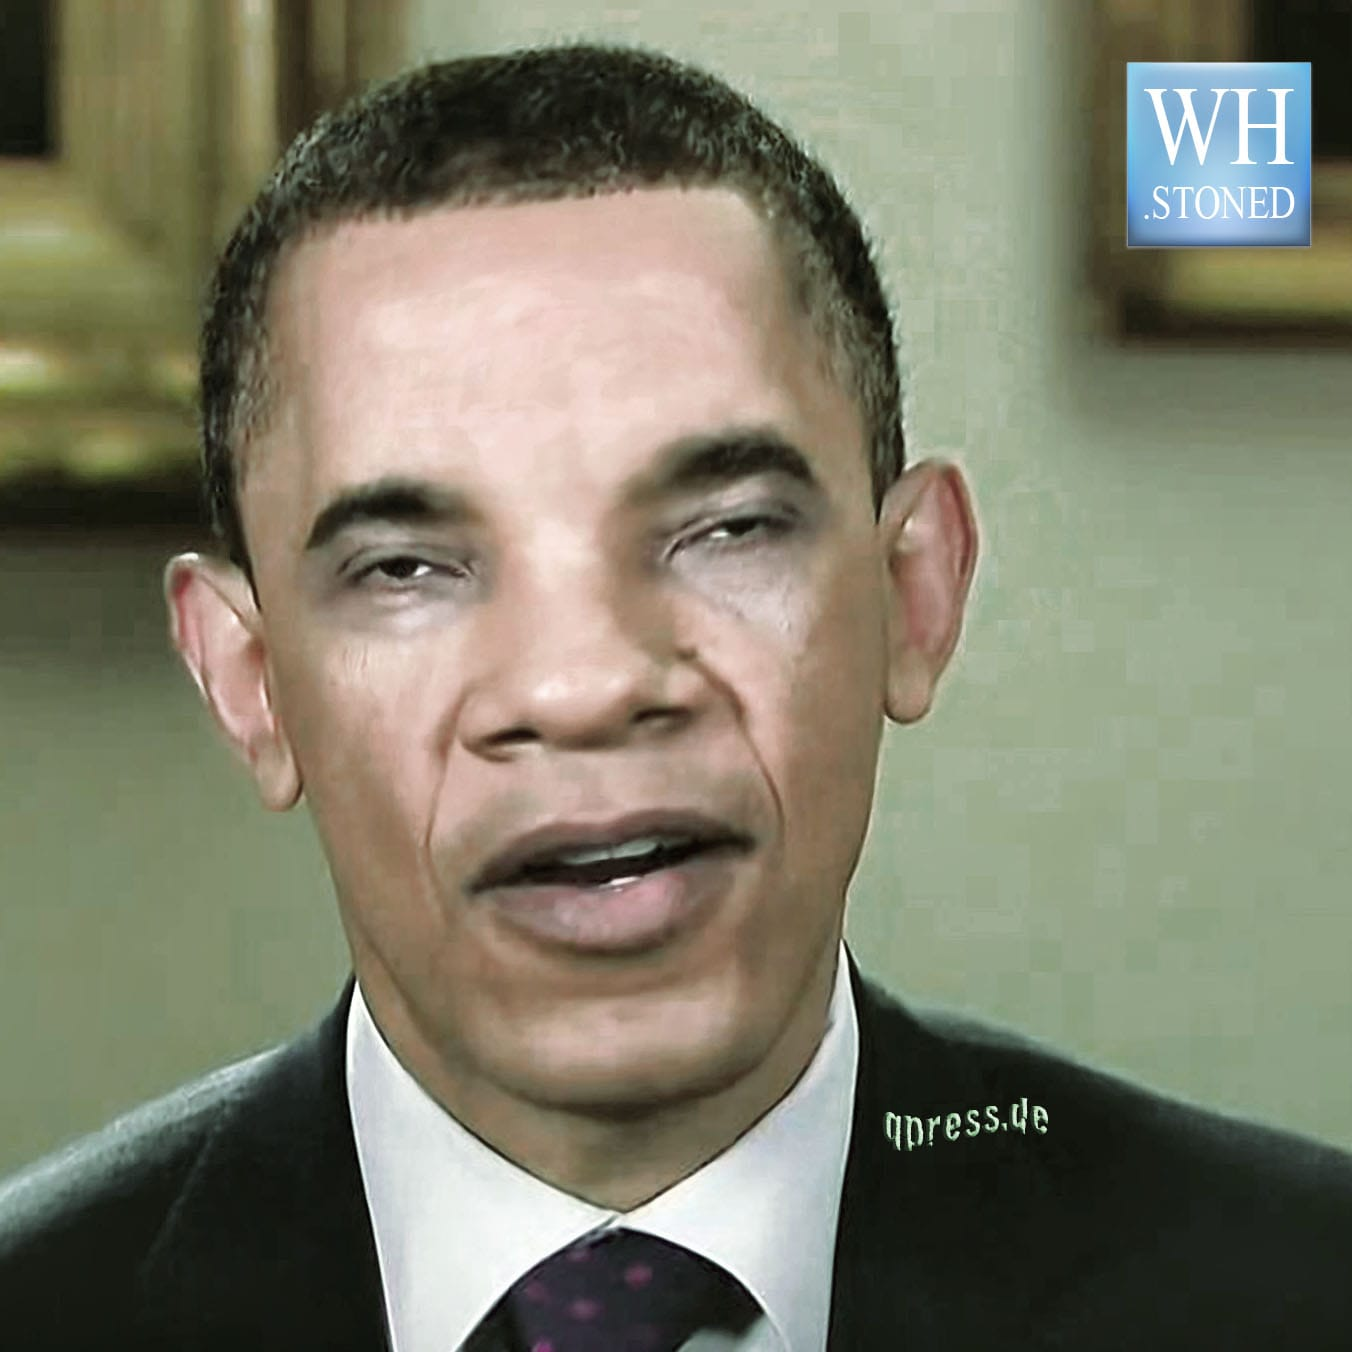 White House stoned Barack Hussein Obama in peace oil mint qalm qpress legalize war on what